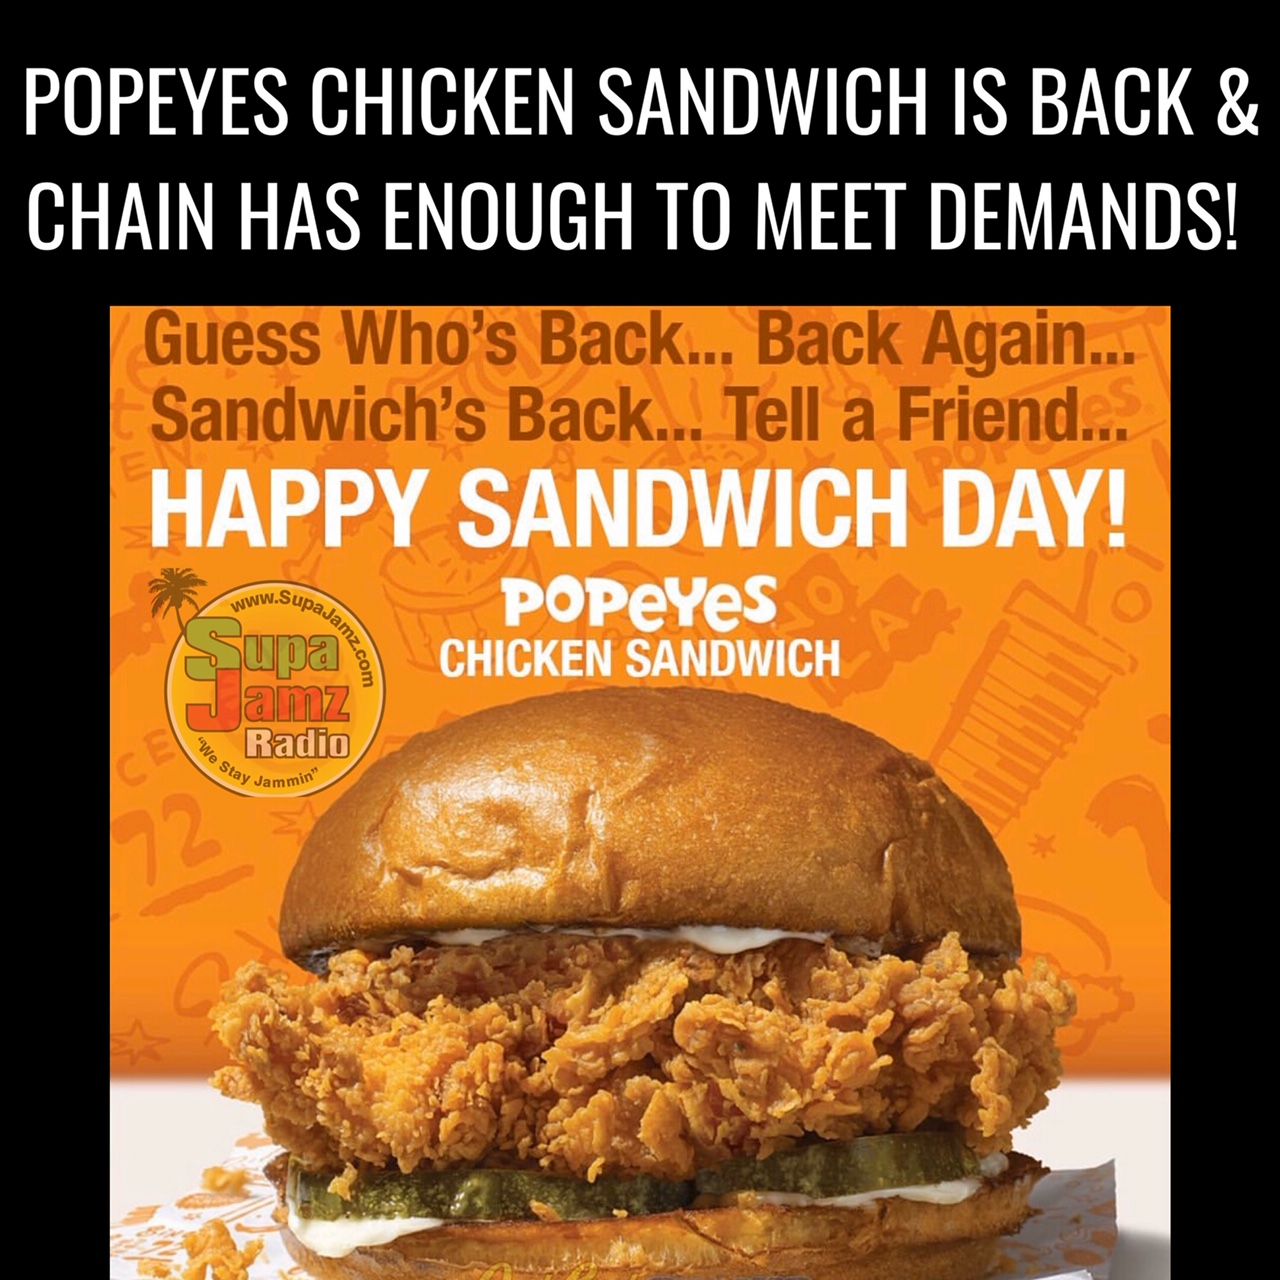 POPEYES FRIED CHICKEN SANDWICH IS BACK AND HERE TO STAY